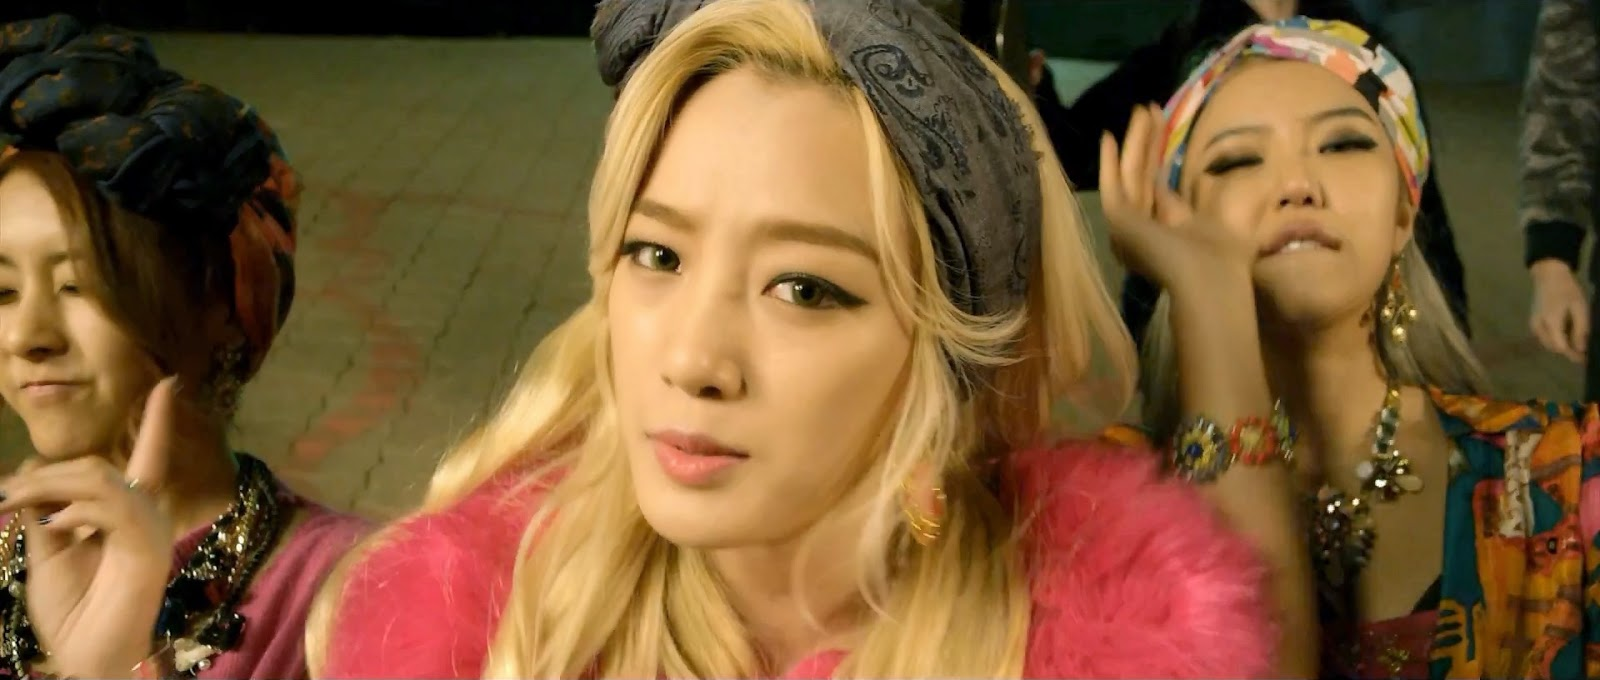 Wassup Nari Shut Up U